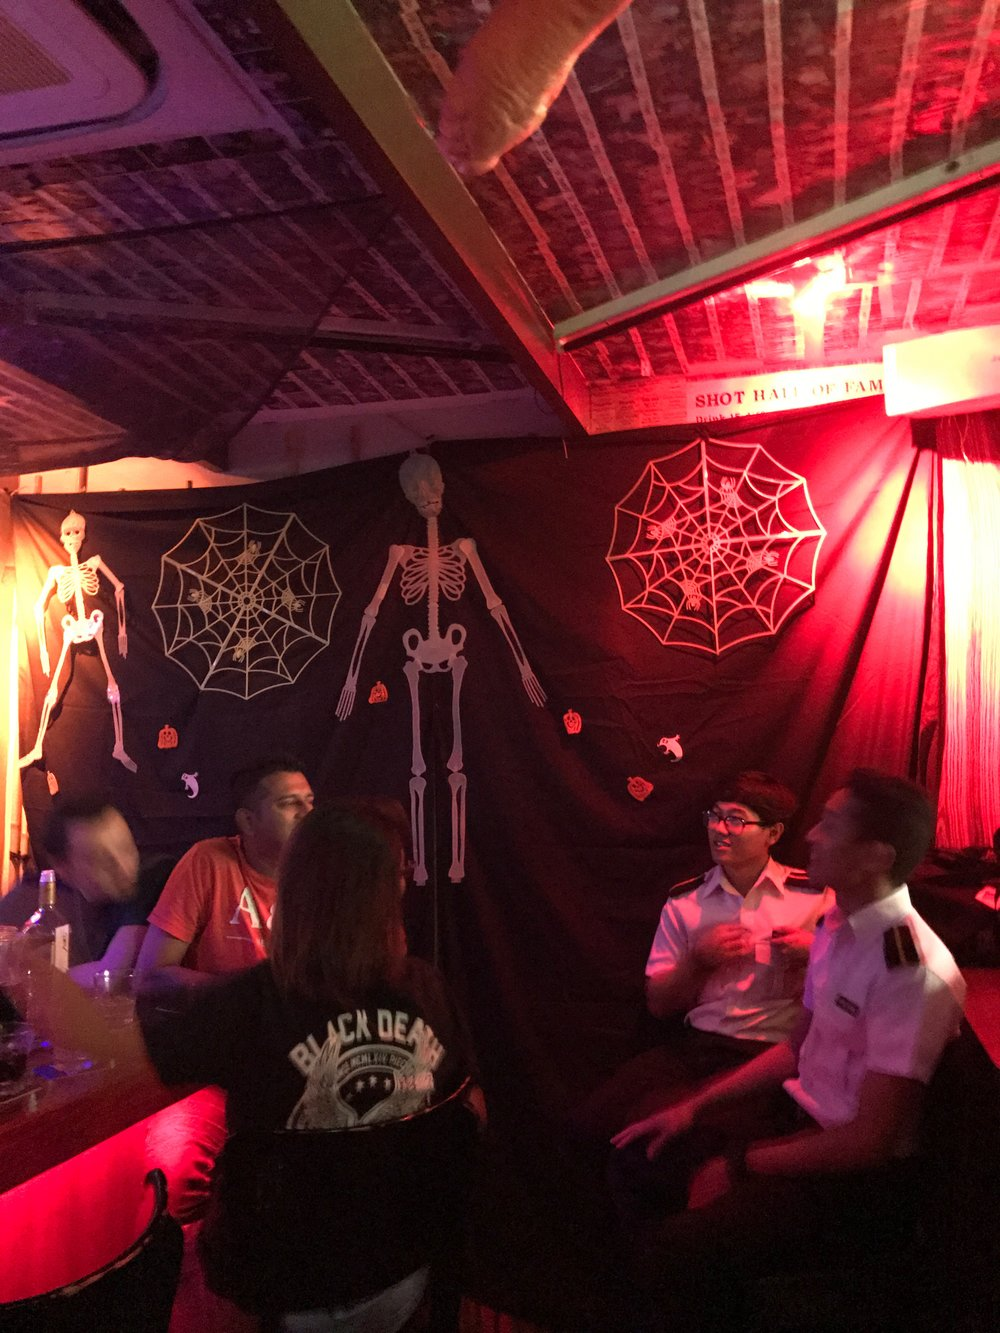 all of the bars were decorated for halloween. we felt right at home!